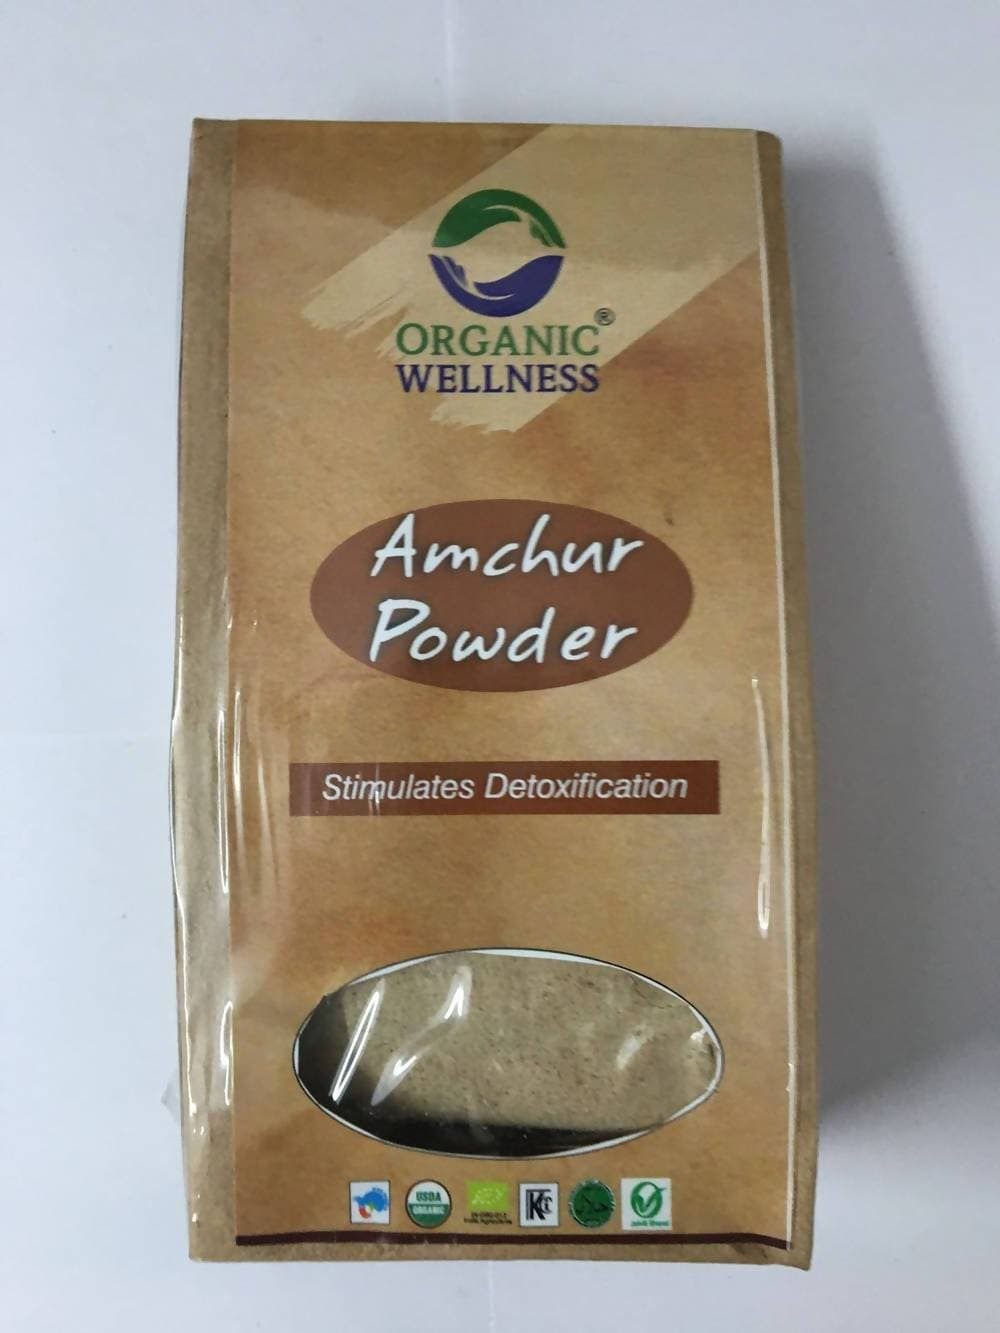 Organic Wellness Amchur Powder